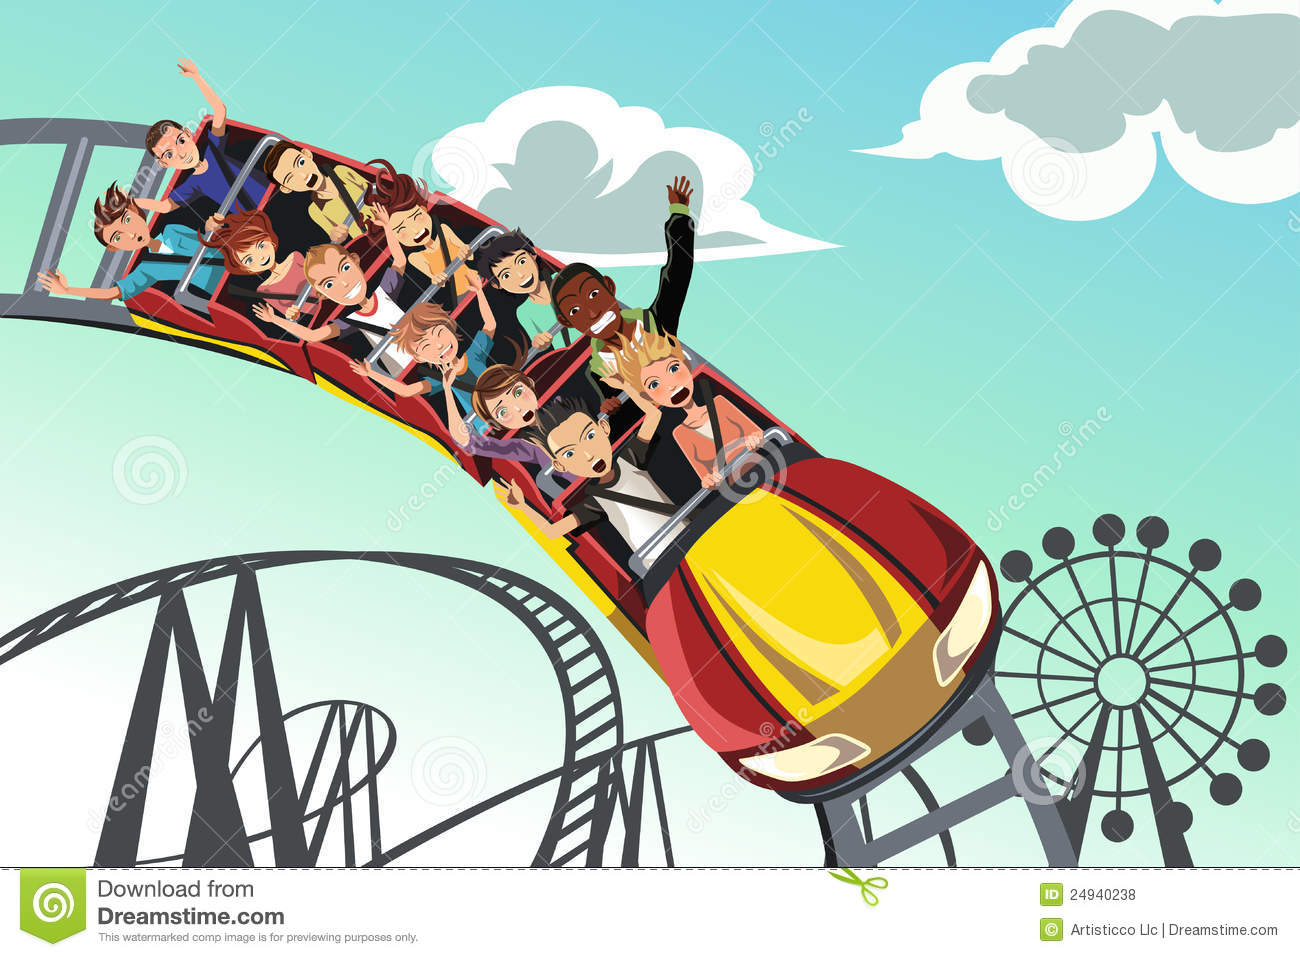 ... illustration of people riding roller coaster in an amusement park